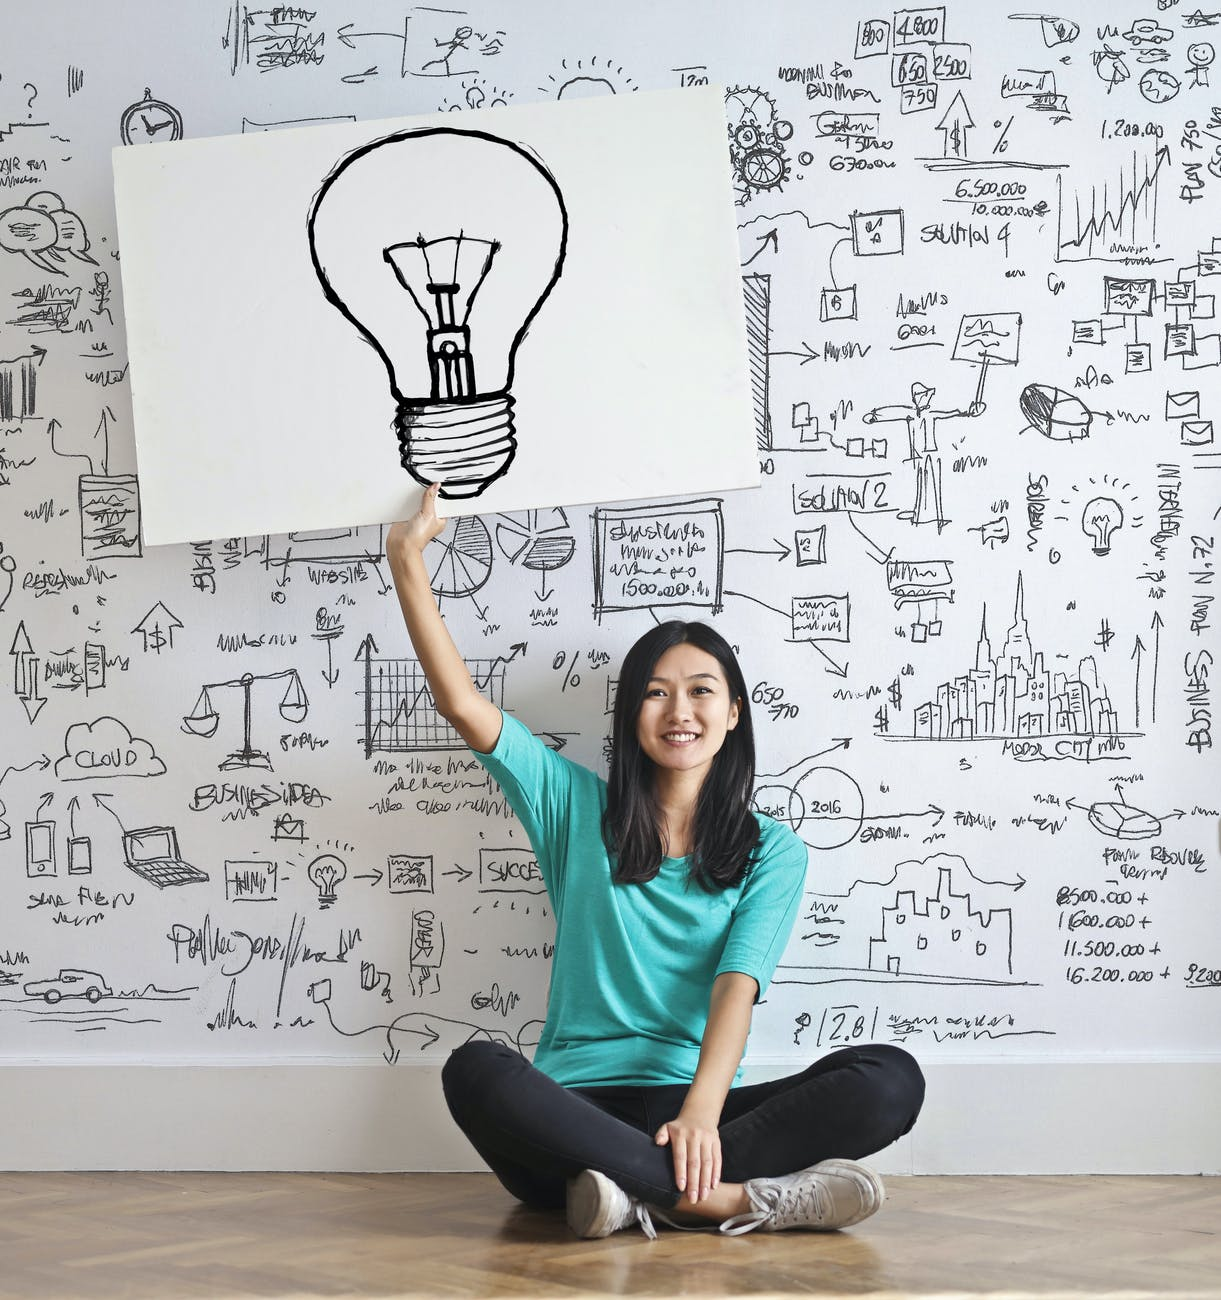 An image of a girl holding up a placard of a bulb. The background of the image has a number of graphs, equations, pie charts, etc. drawn on a white wall.